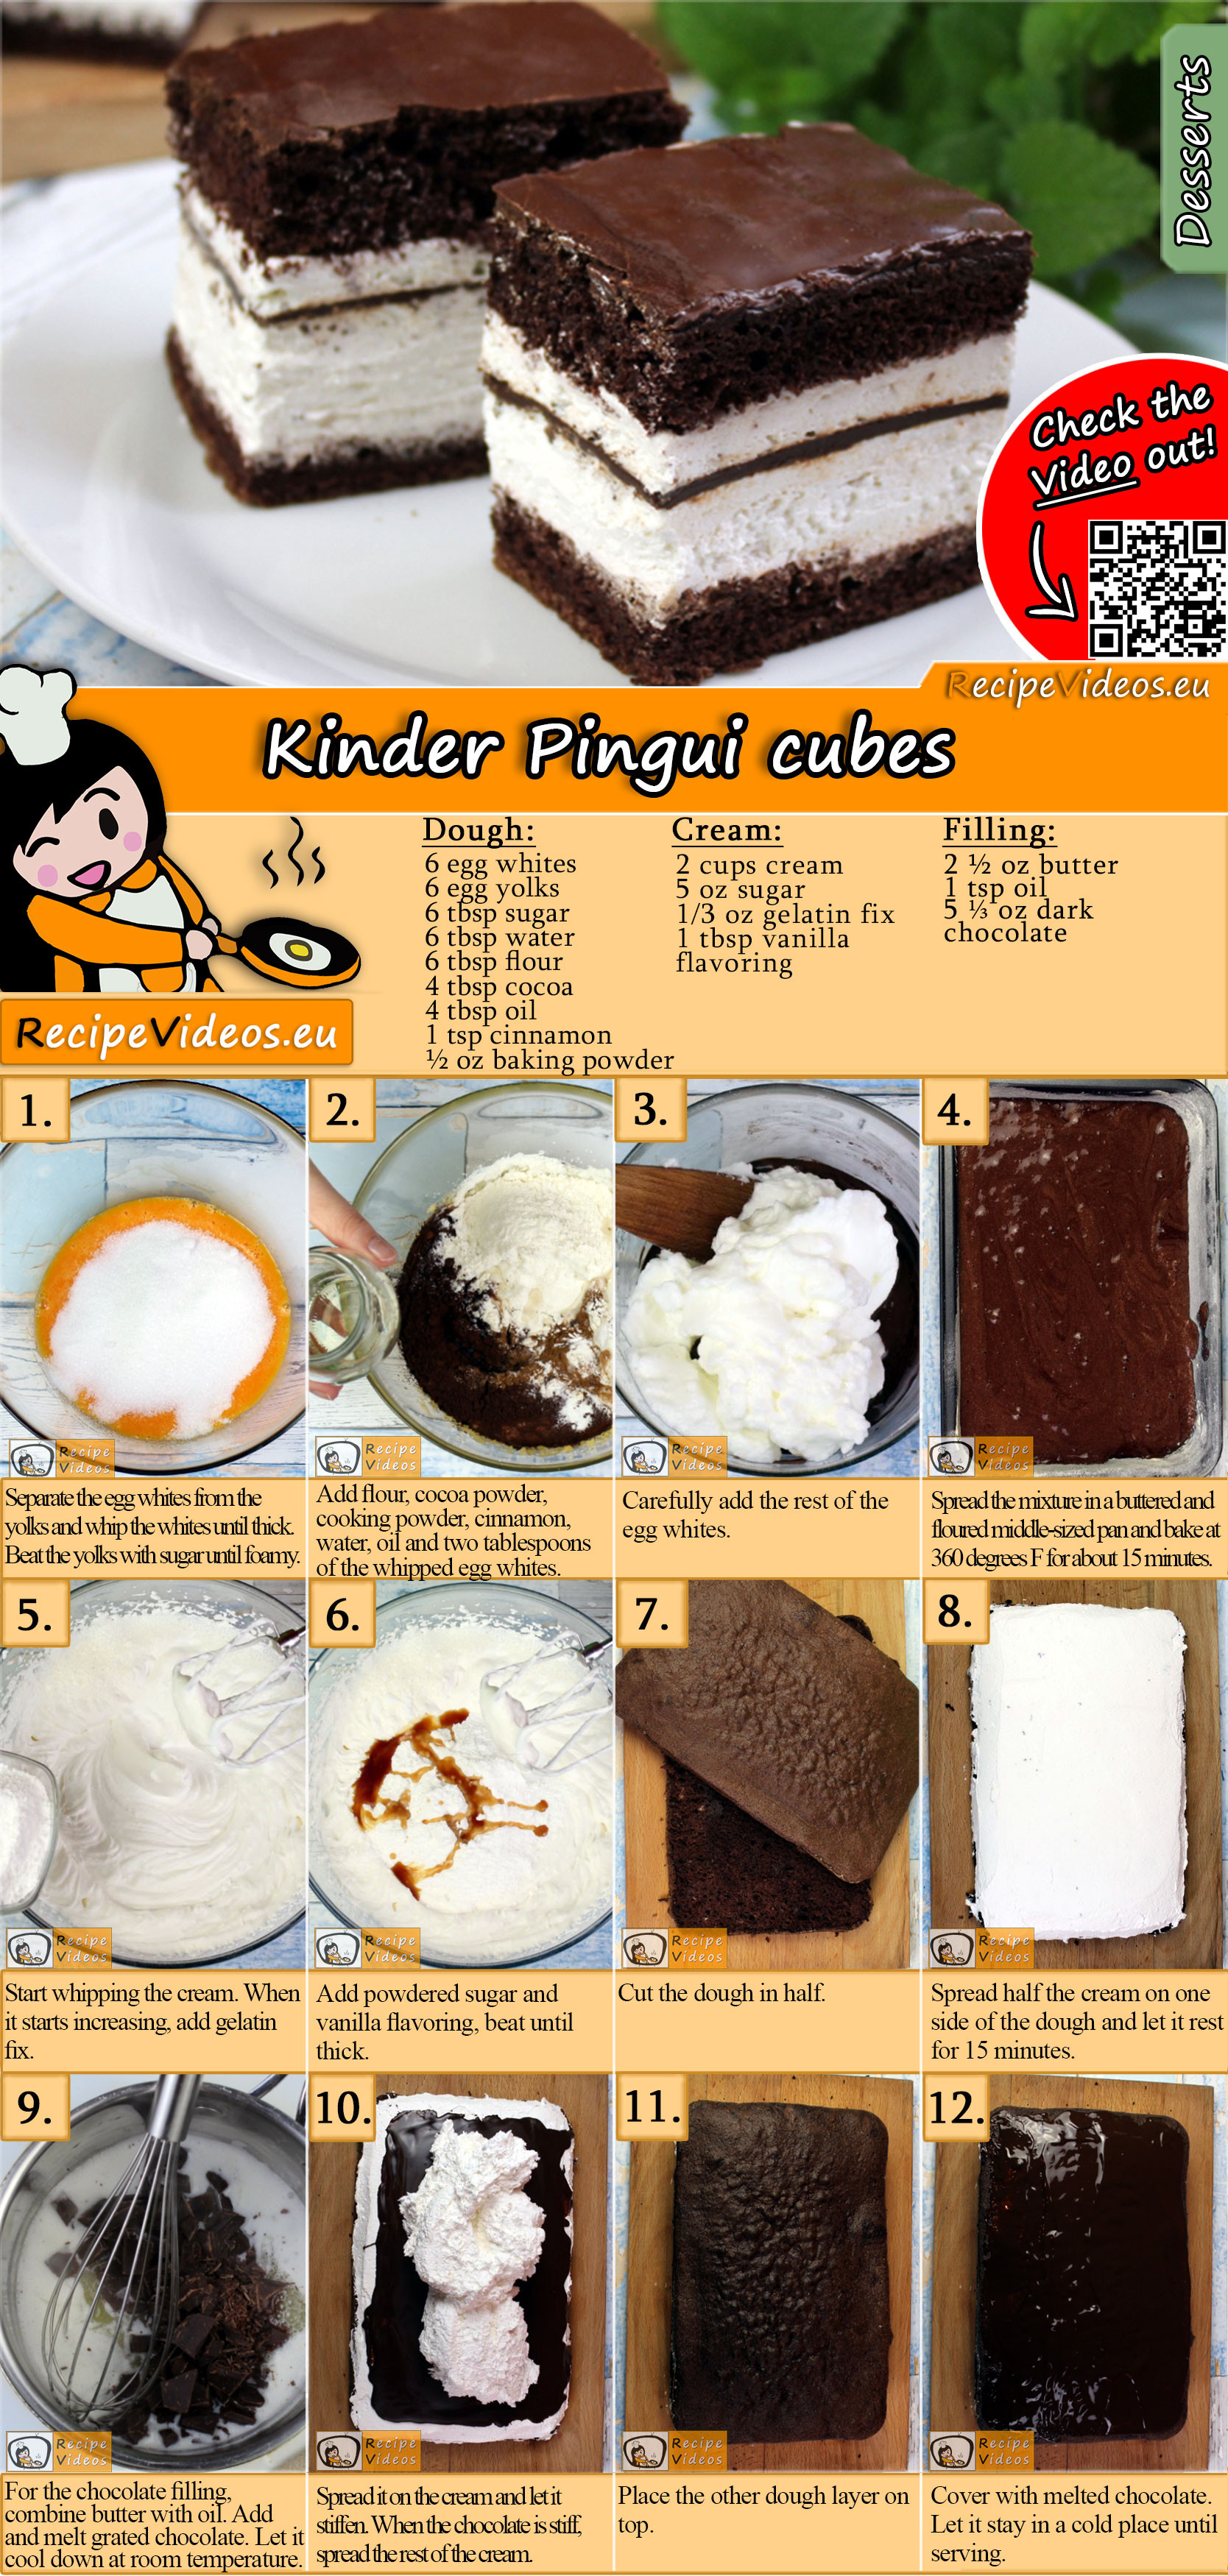 Kinder Pingui cubes recipe with video